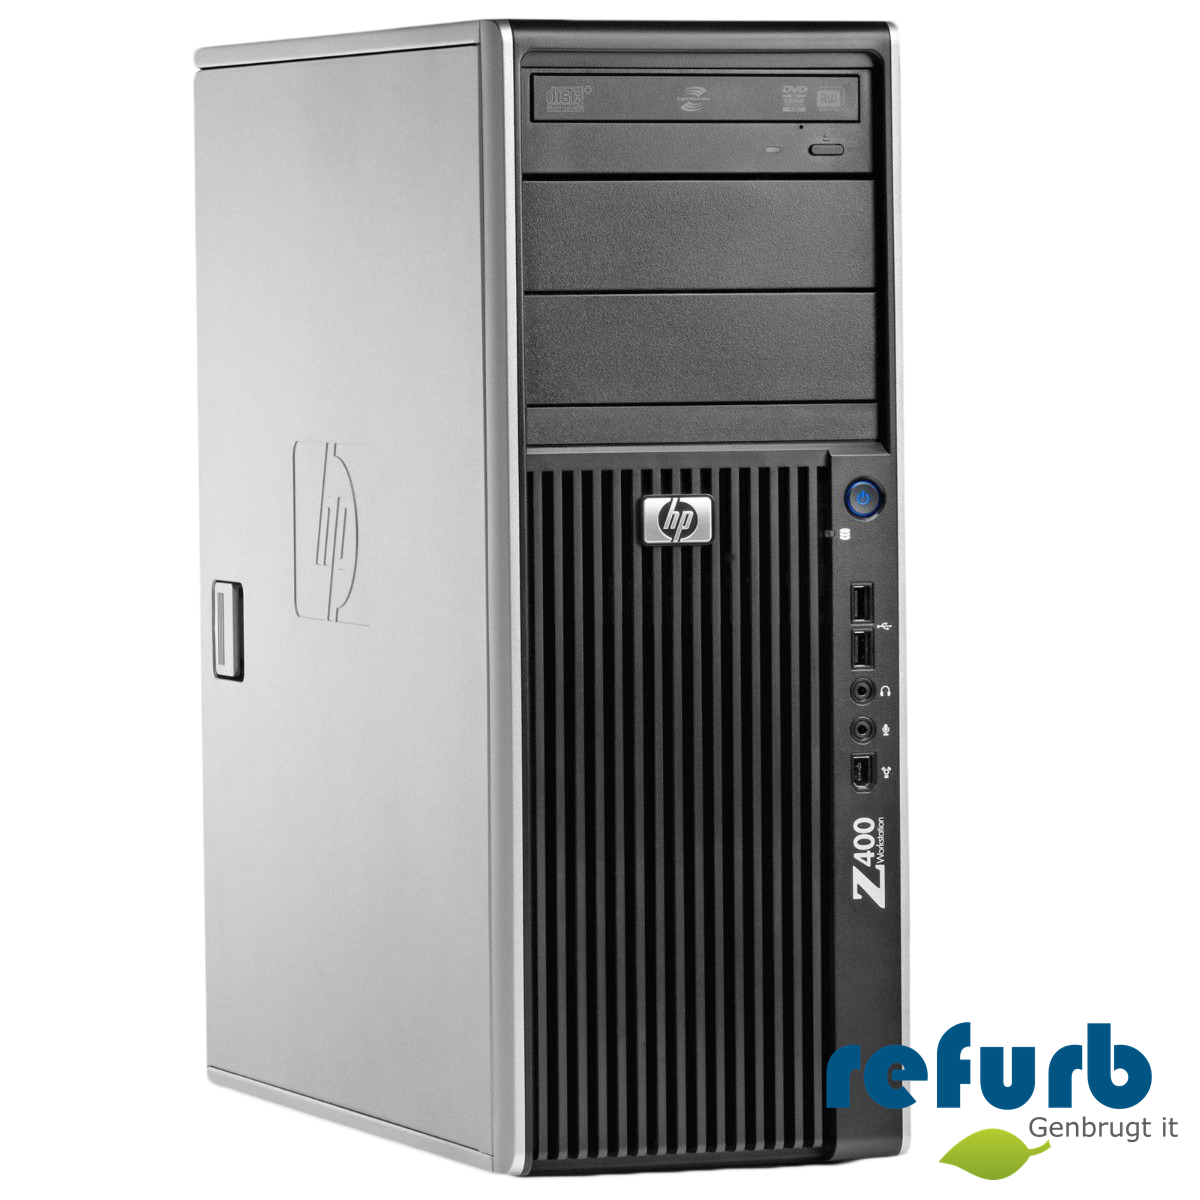 Hp z400 workstation fra Hp på refurb